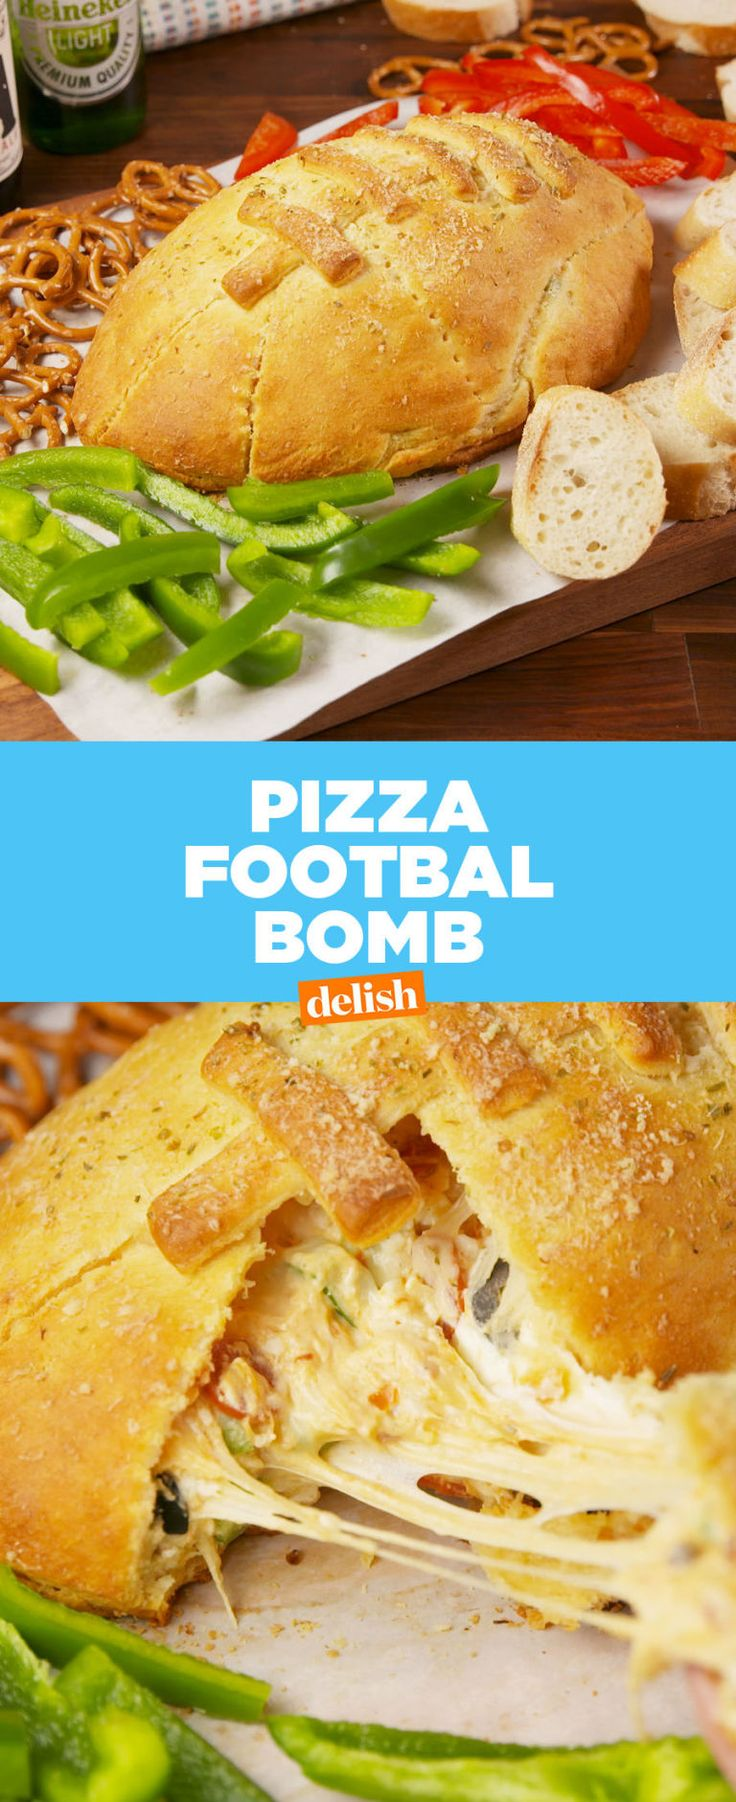 Pizza Football Bomb - Delish.com